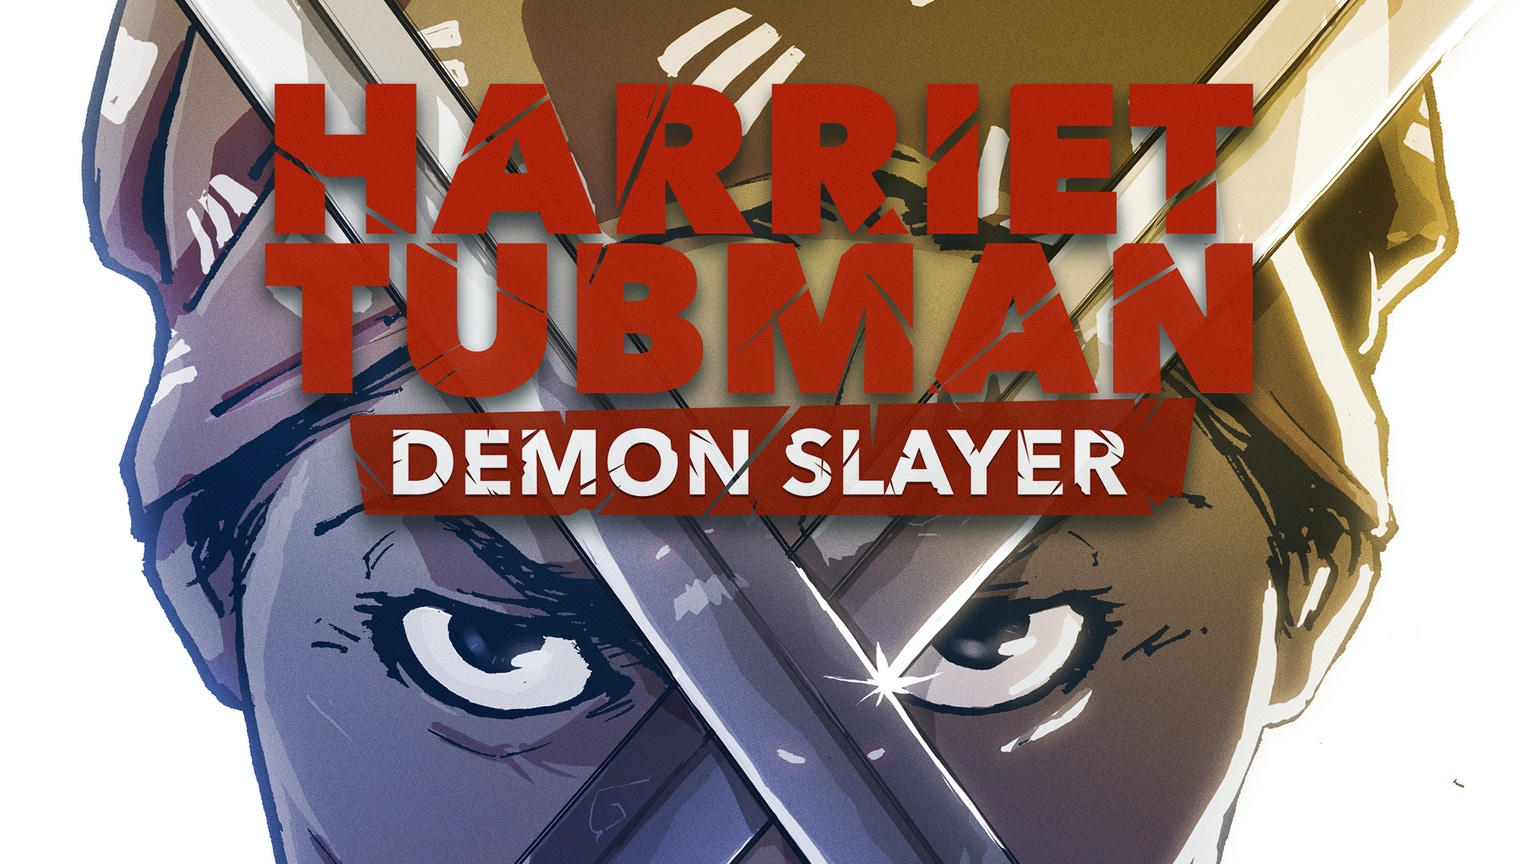 Harriet tubman demon slayer by david crownson kickstarter for Demon slayer